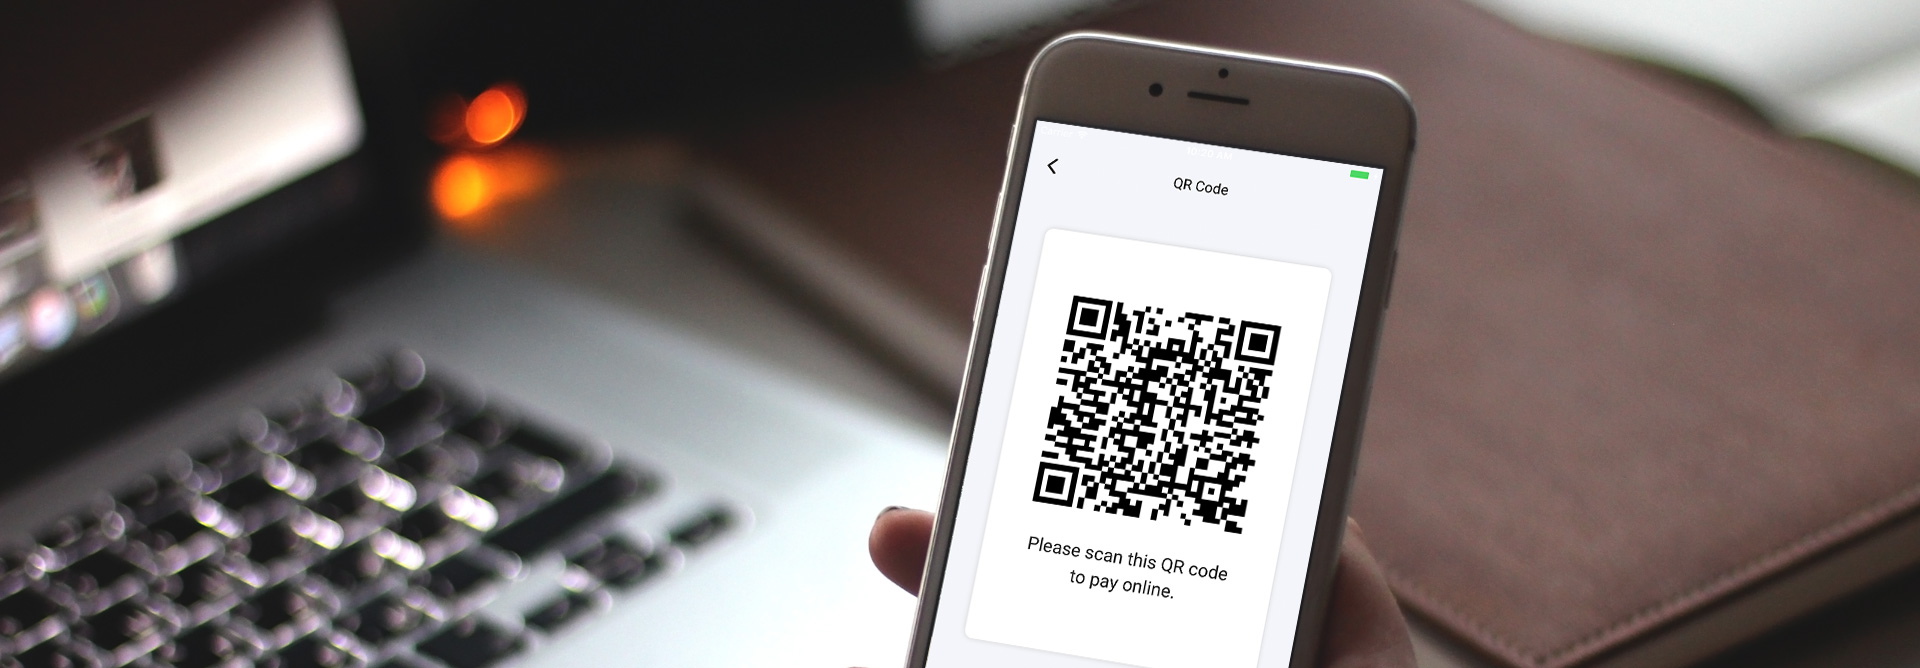 Want to accept QR Code payment? Here's how!